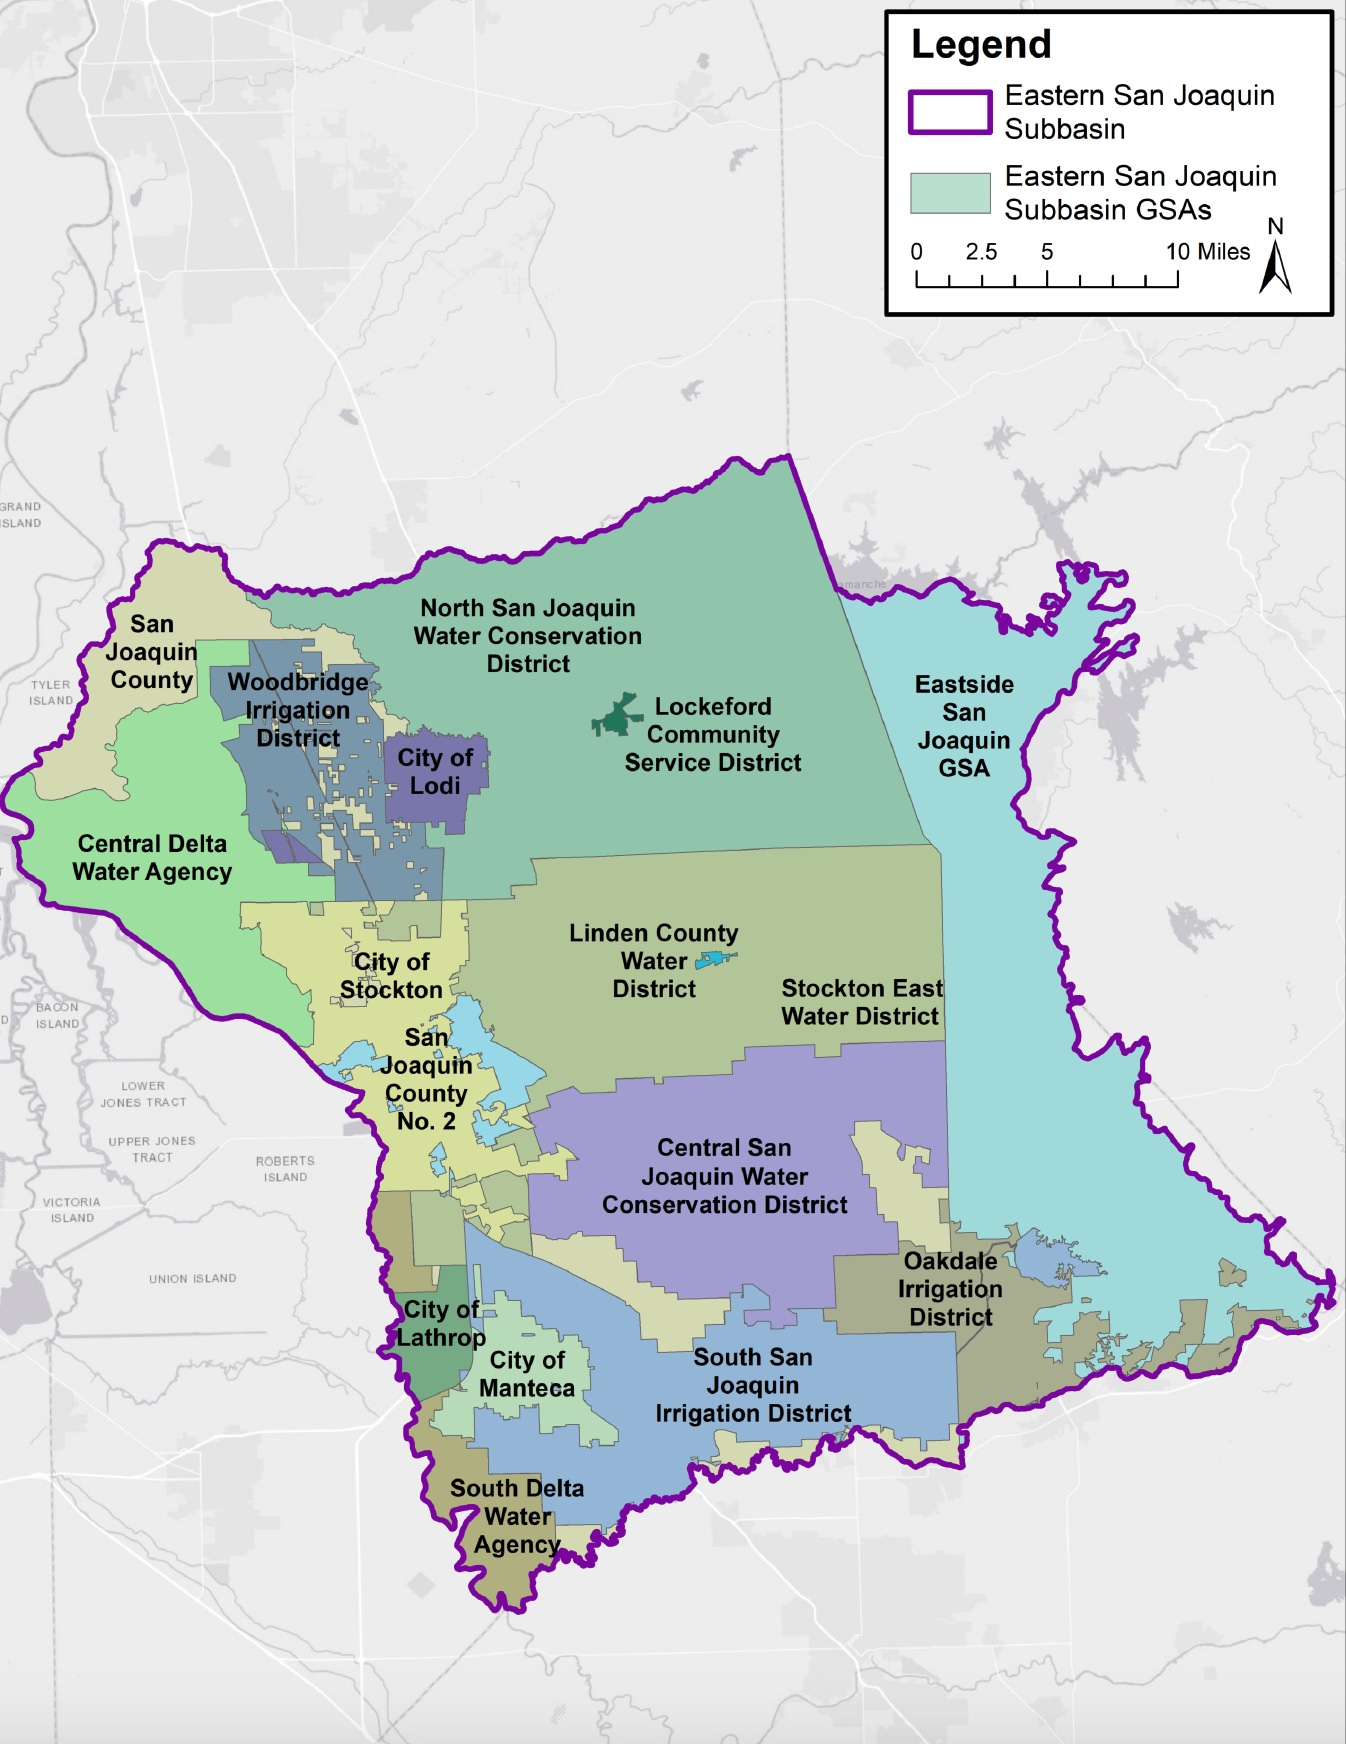 Map of the Eastern San Joaquin County